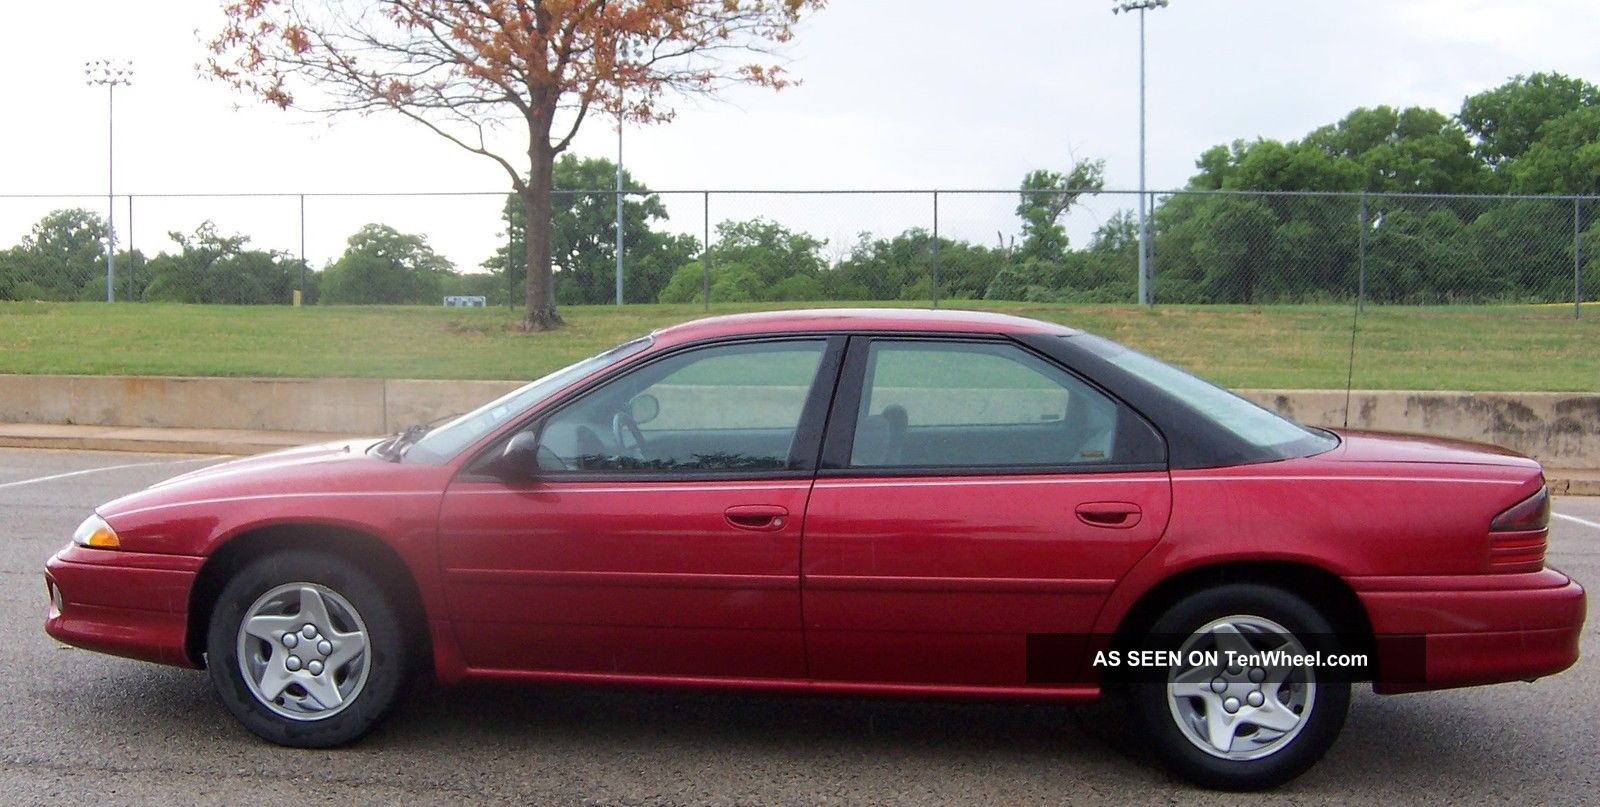 Dodge Intrepid Inside And Out Lgw on 1997 Dodge Intrepid Color